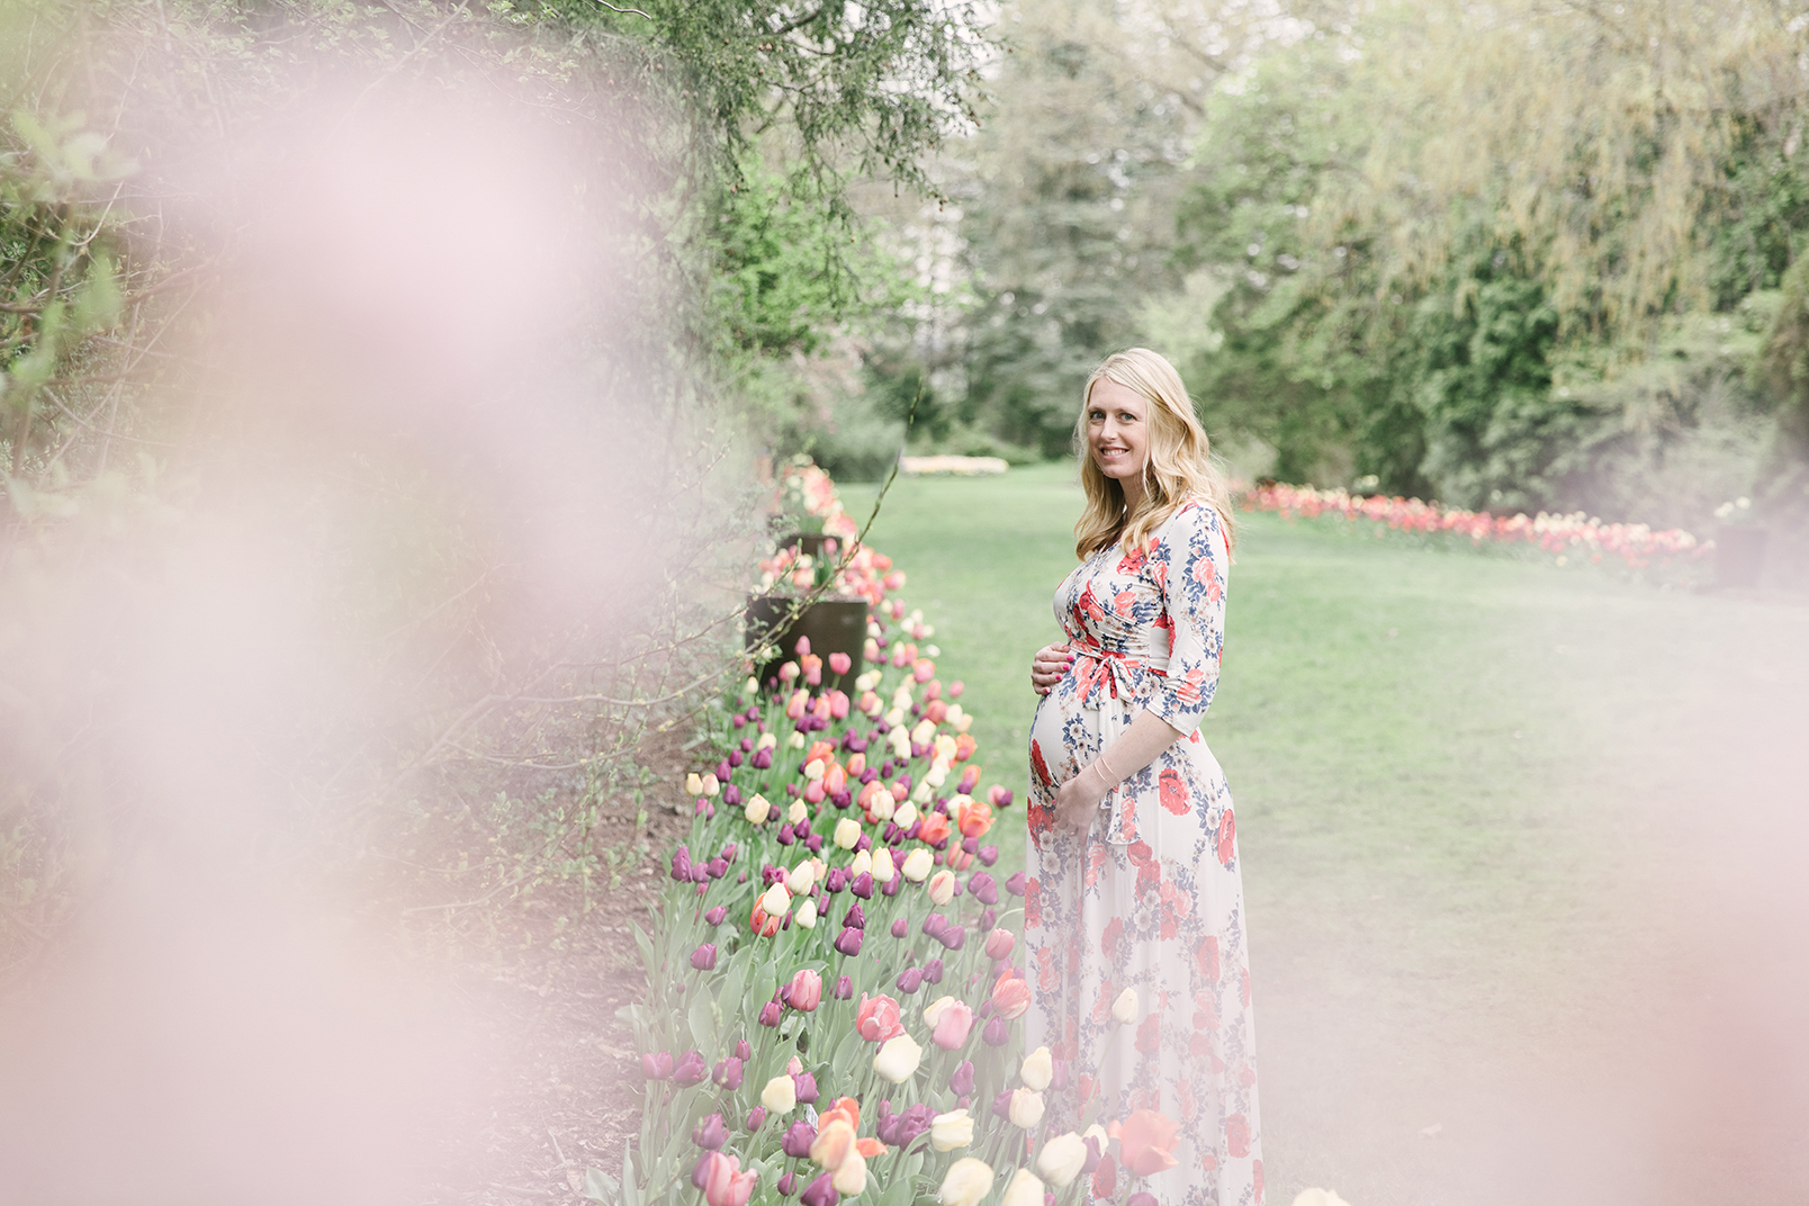 Maternity-Session-Maternity-Photos-Maternity-Pictures-by-Christie_Leigh_Photo-in-Warren-OH-Hermitage-PA-Youngstown-OH-Cortland-OH-Buhl-Farm-Park-Millcreek-Metro-Parks-Mosquito-Lake-State-Park-14.JPG